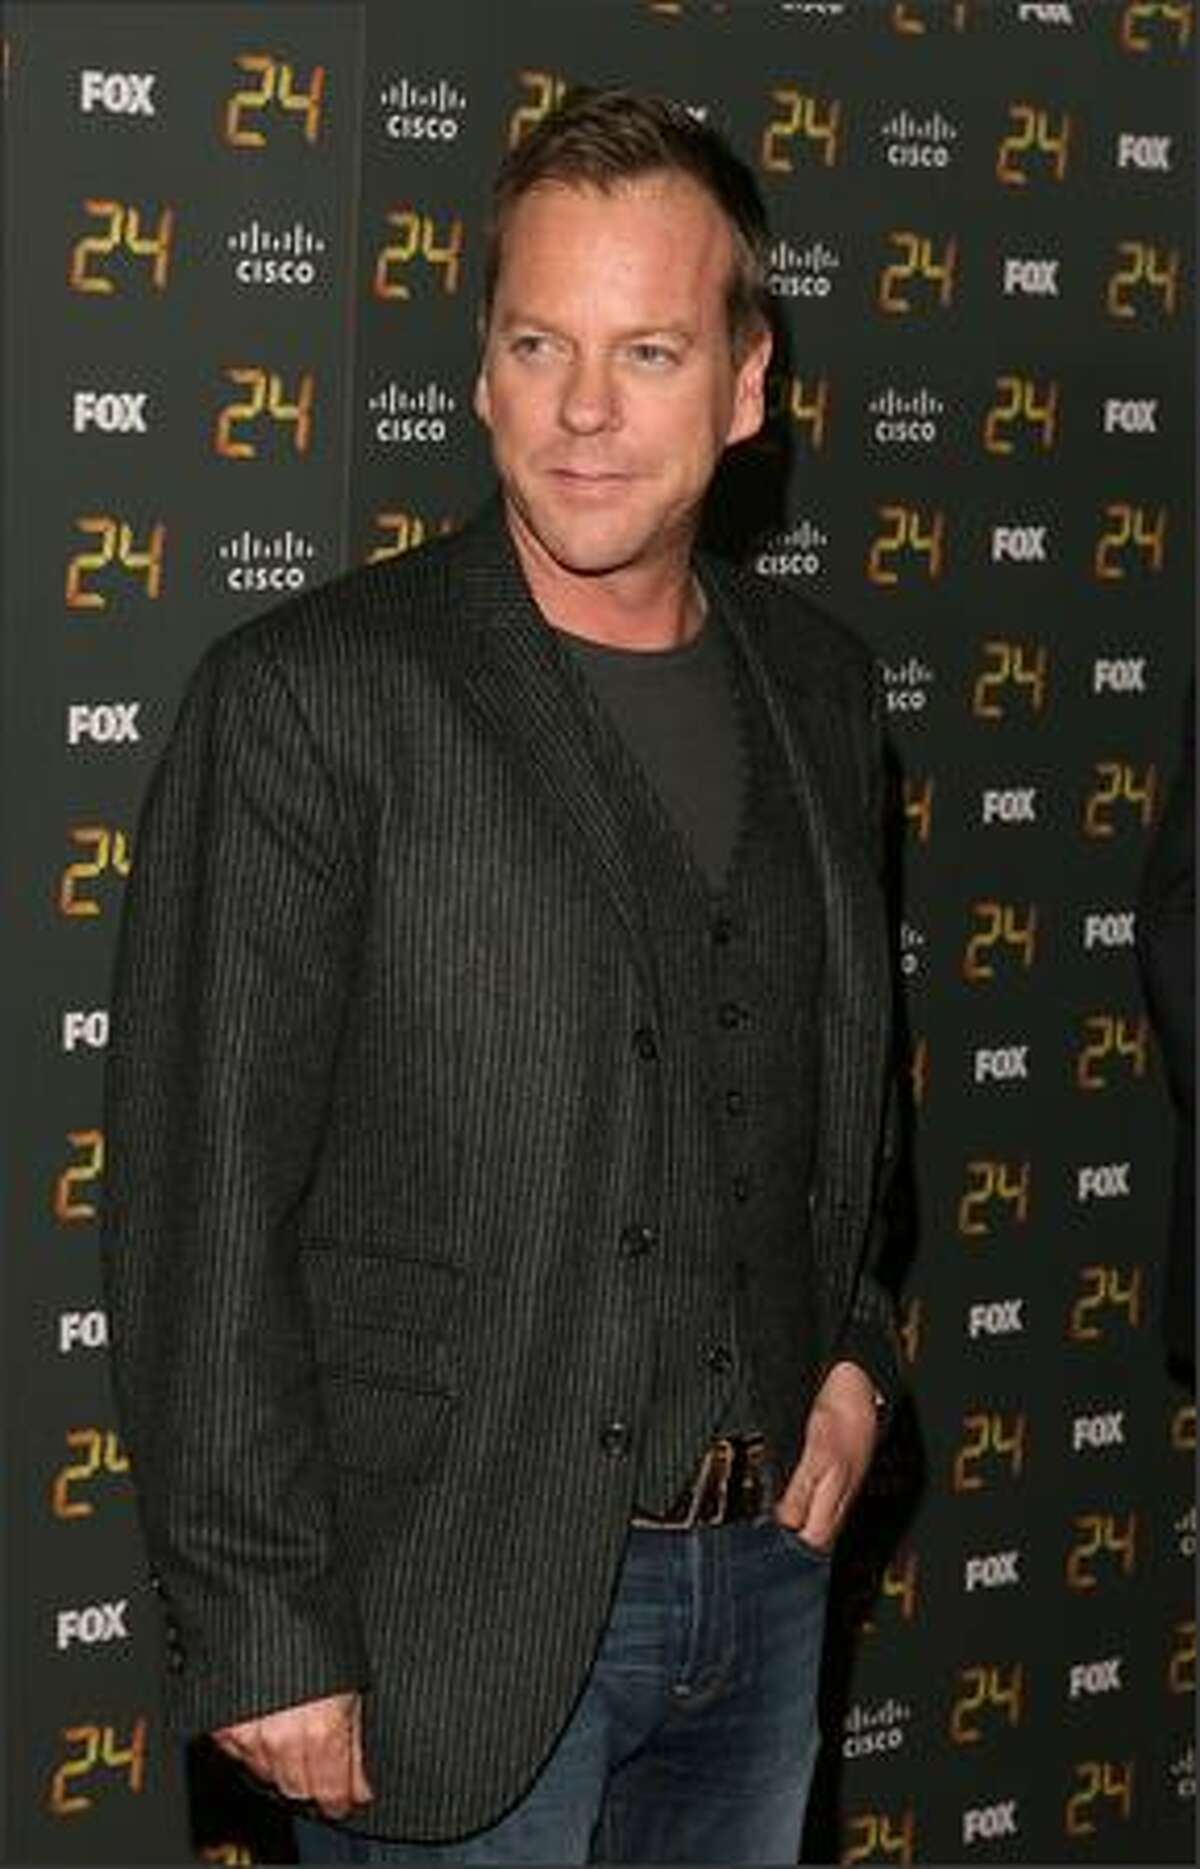 Actor Kiefer Sutherland arrives at the